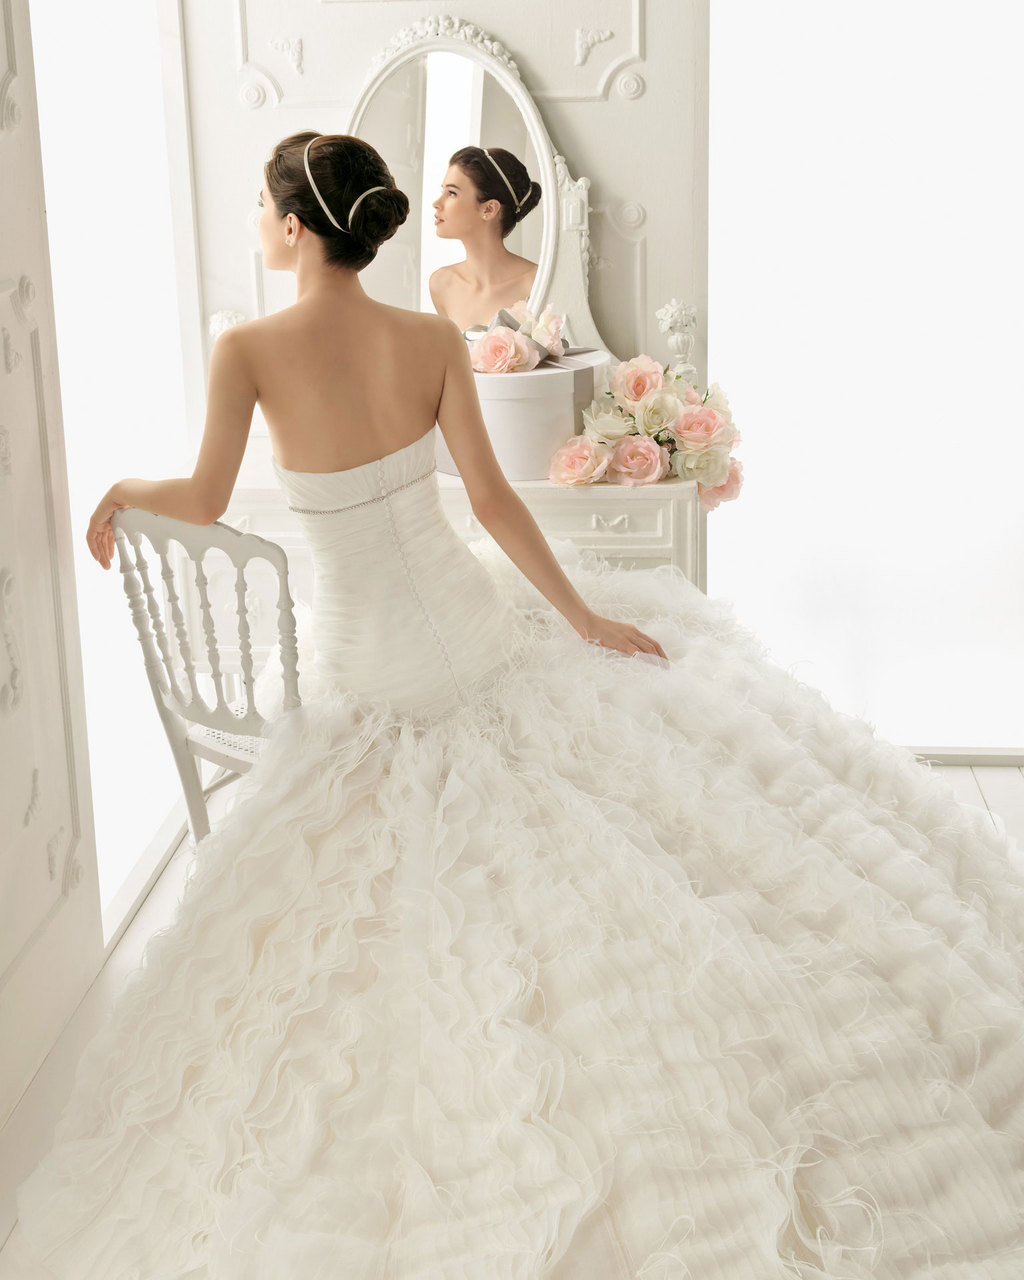 2013-wedding-dress-aire-barcelona-bridal-gowns-rusia.full